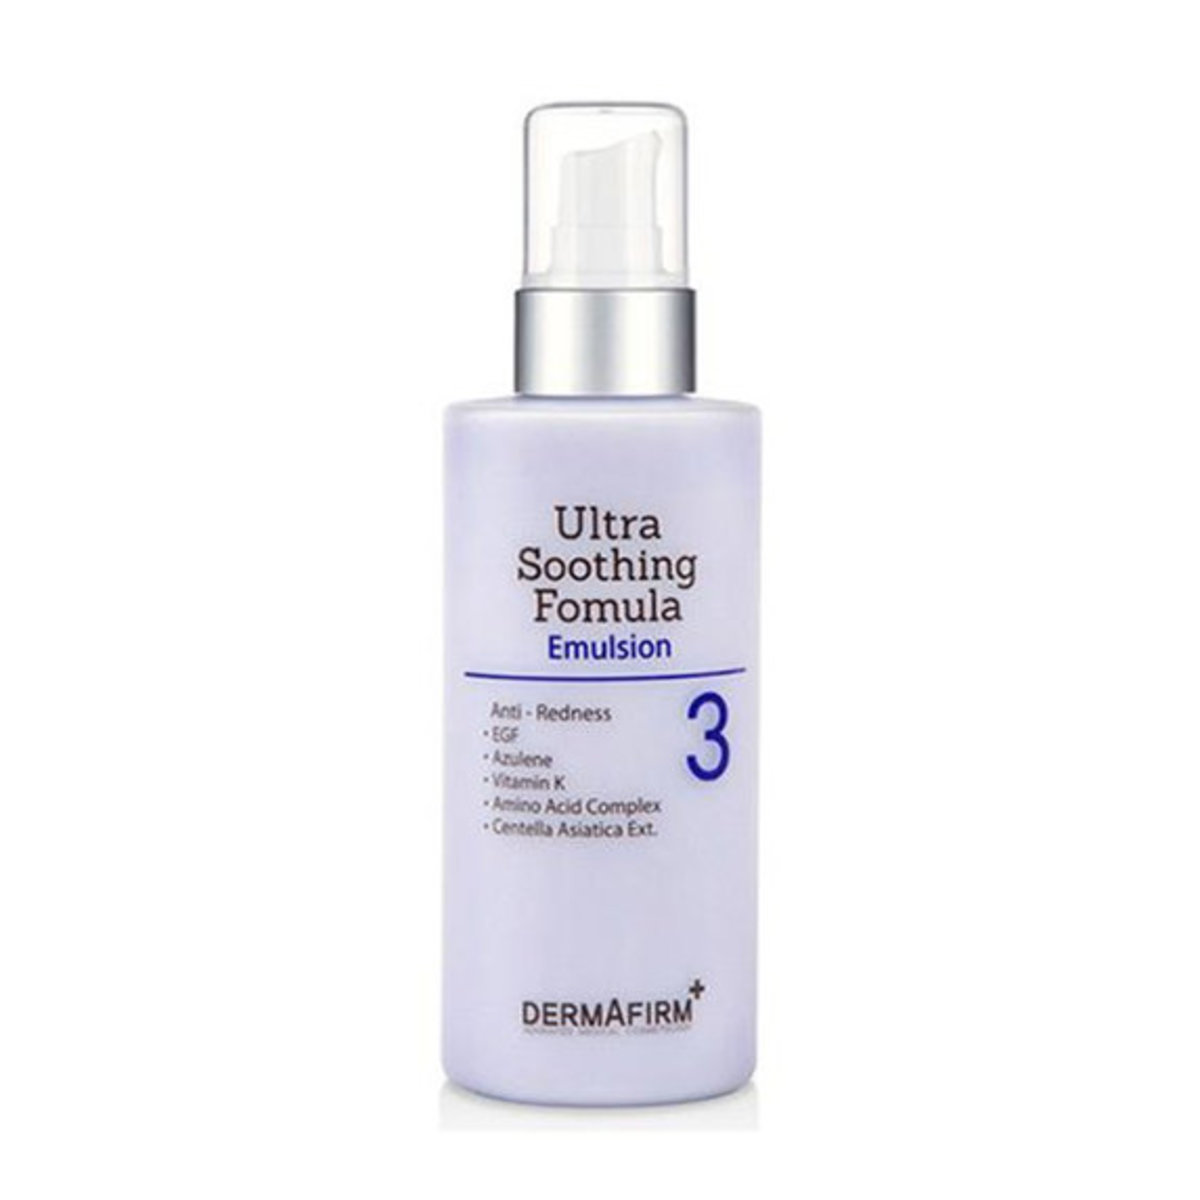 Ultra Soothing Emulsion 200ml